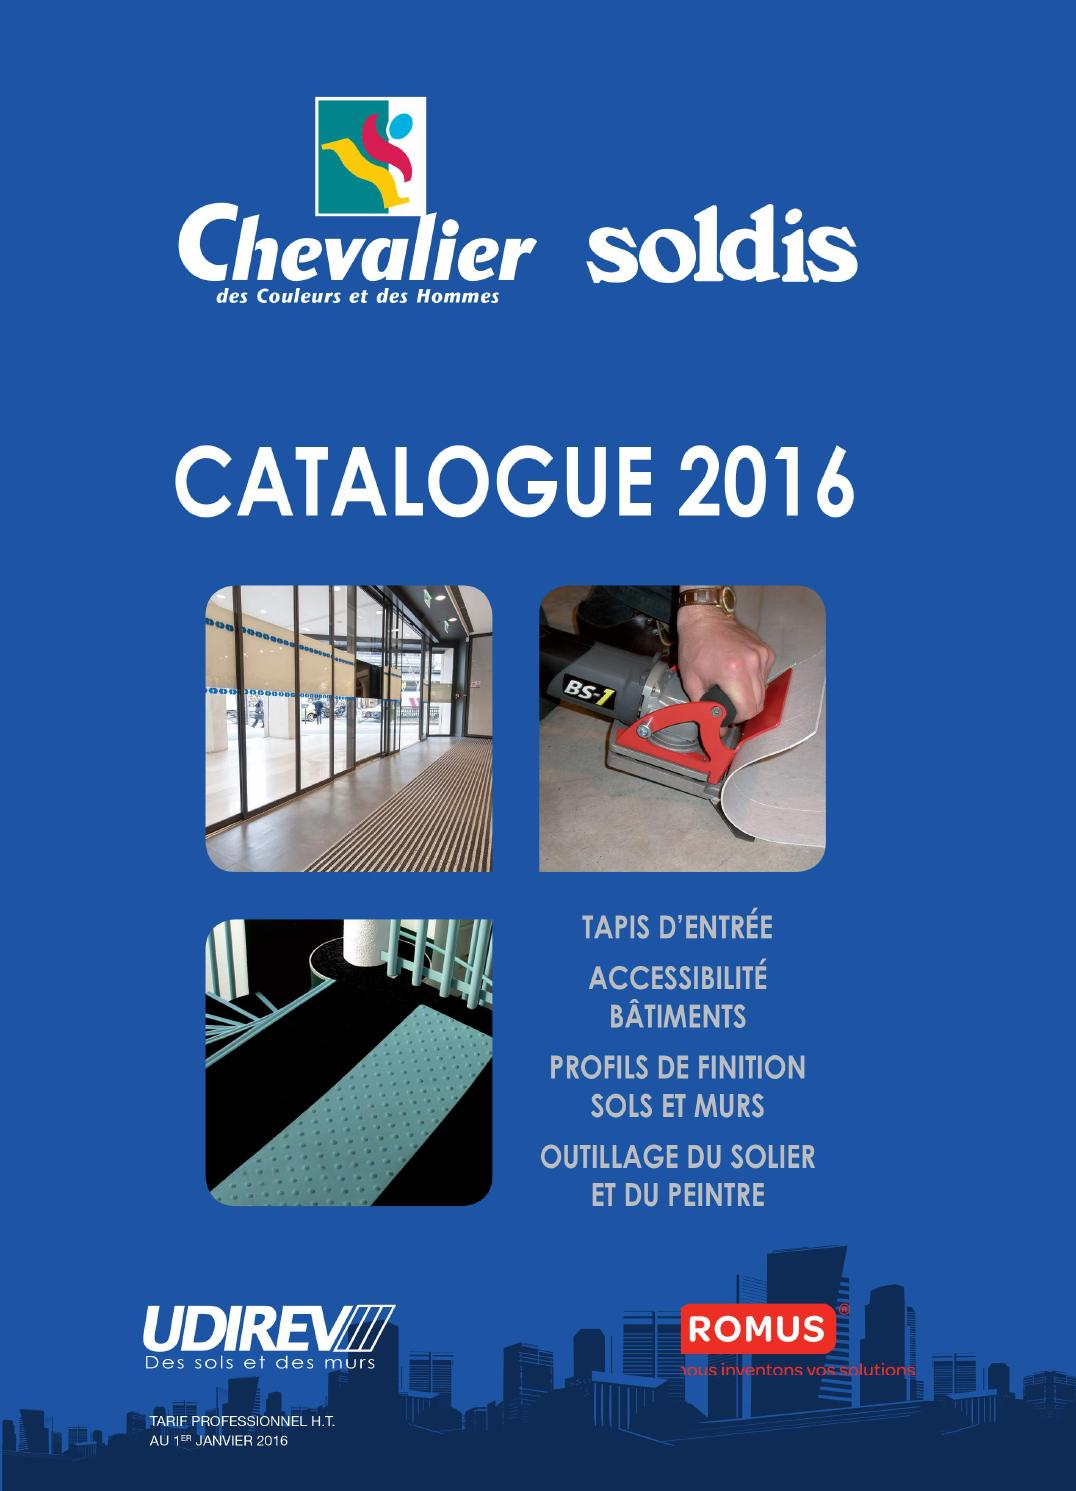 bbf0683e26 Catalogue chevalier romus 2016 avec prix complet compressed by Chevalier -  issuu